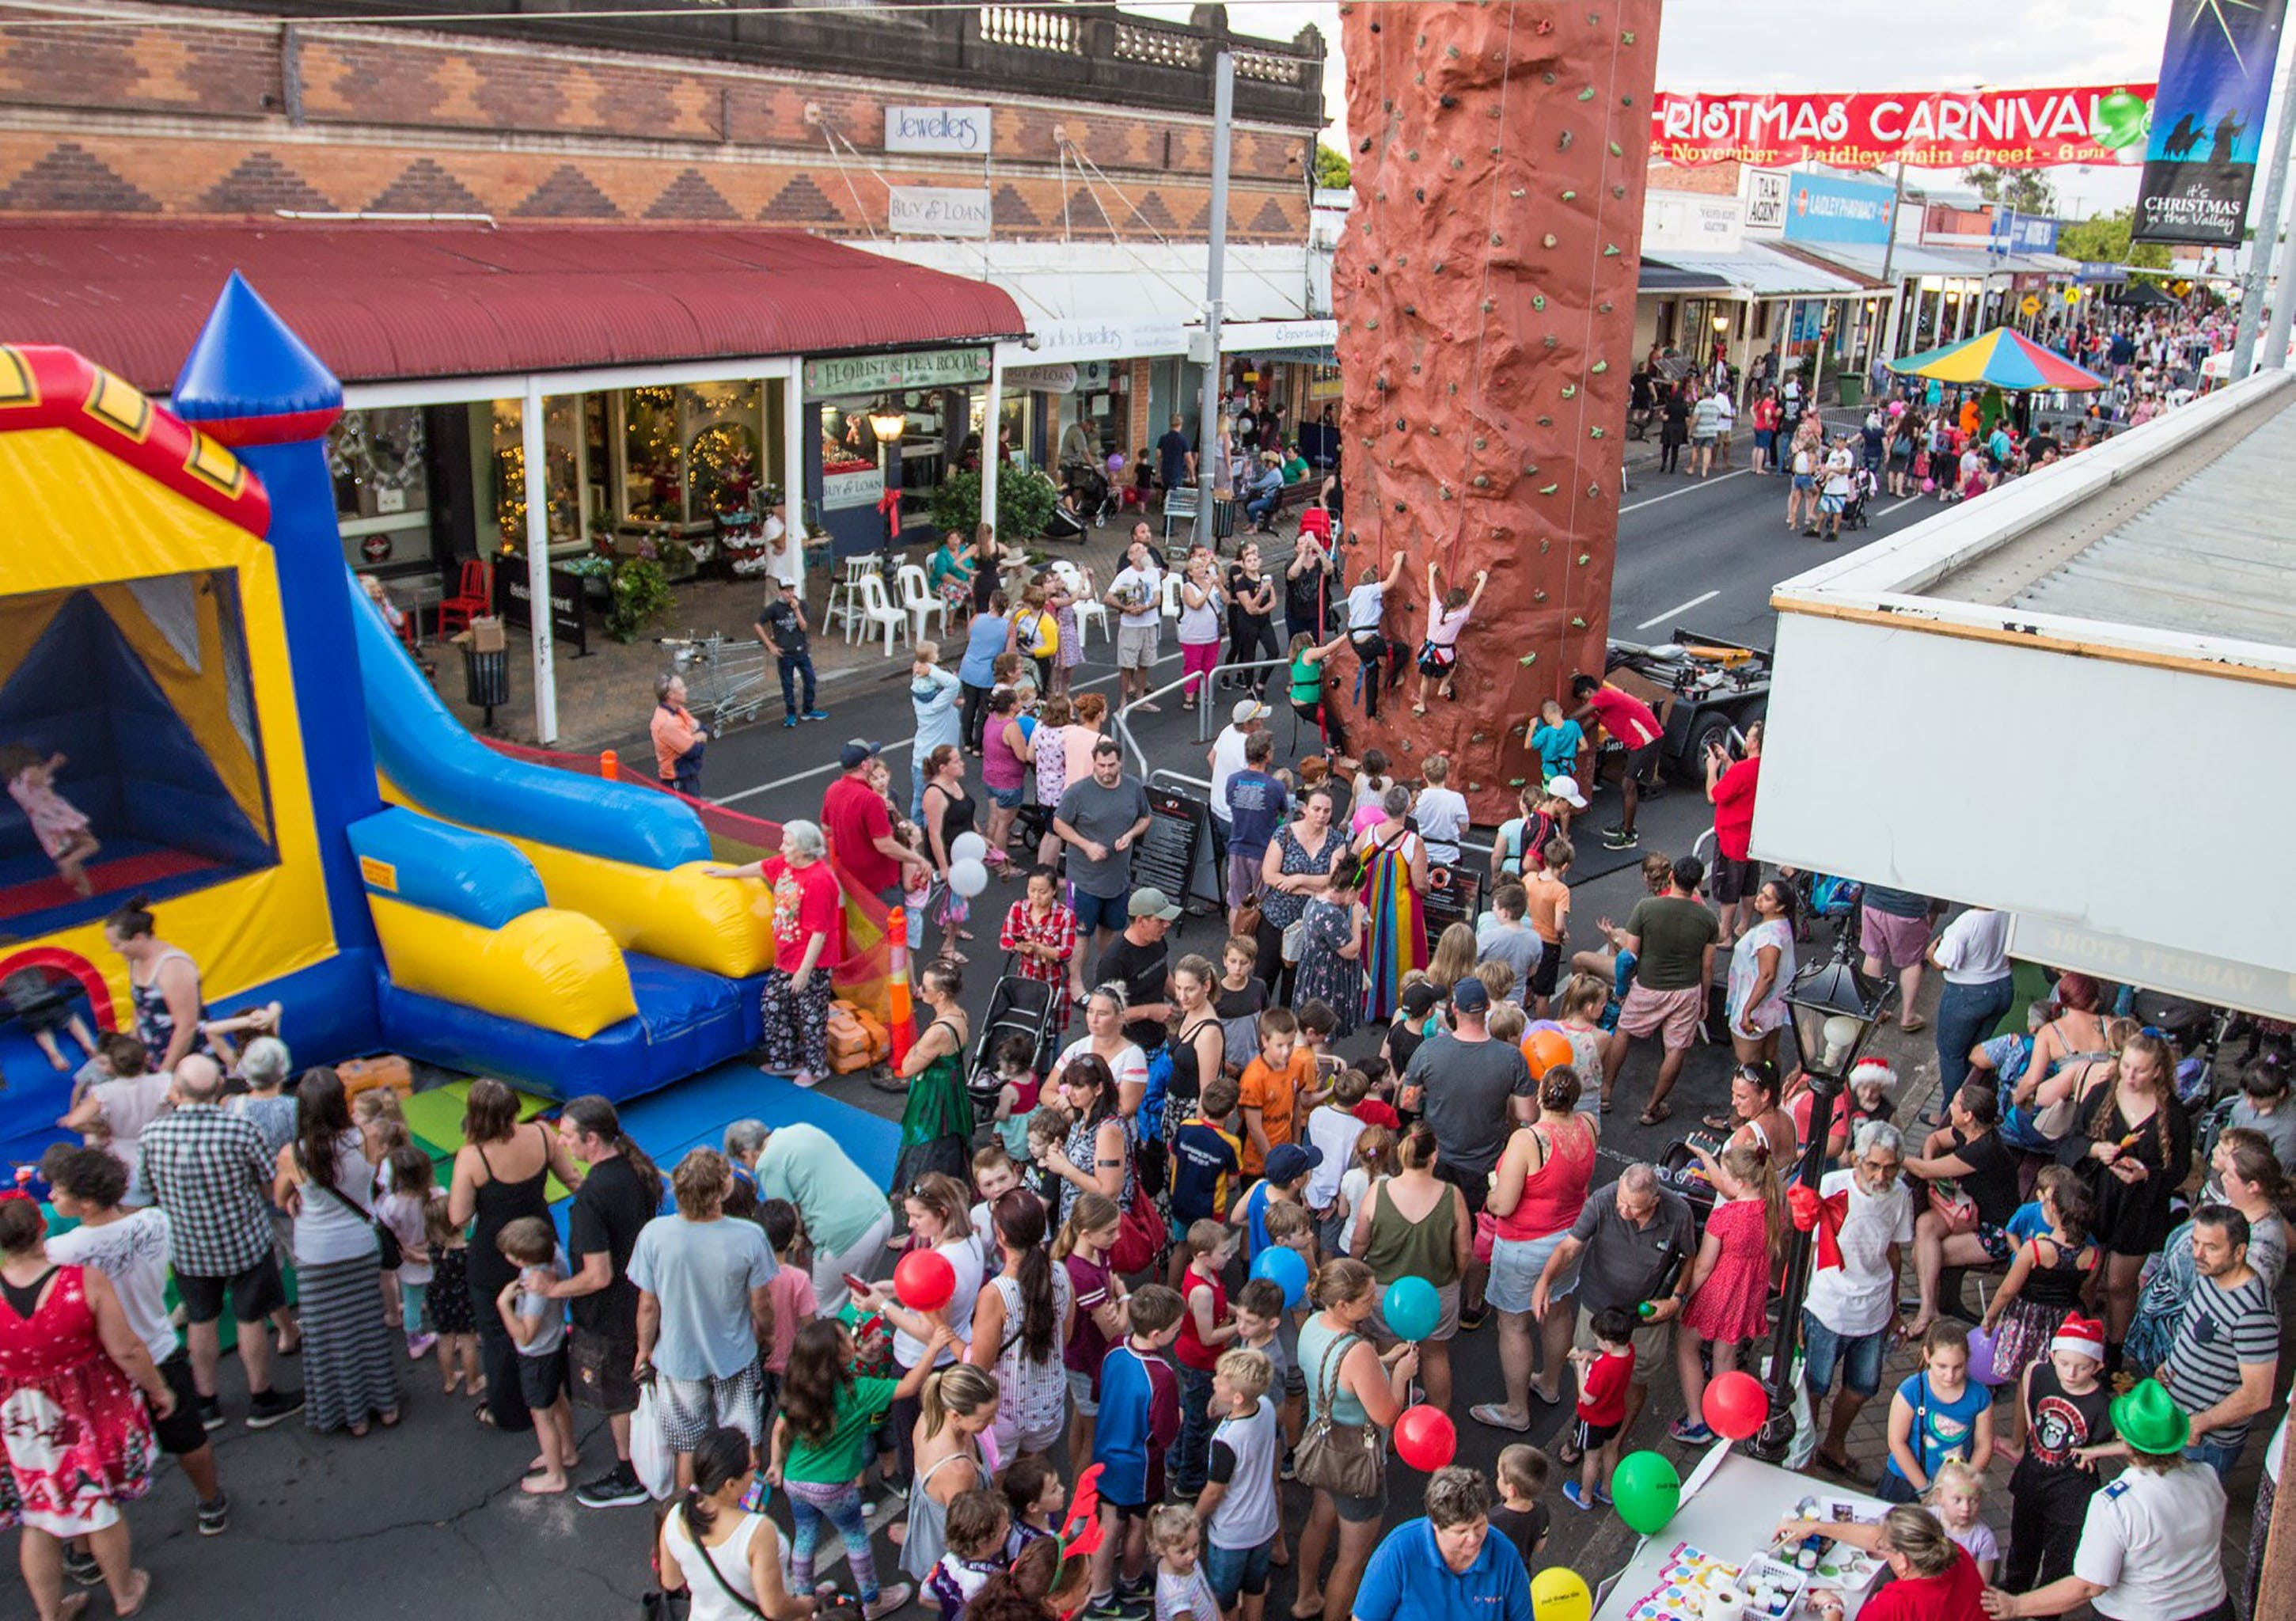 Laidley Christmas Street Festival - Accommodation in Surfers Paradise